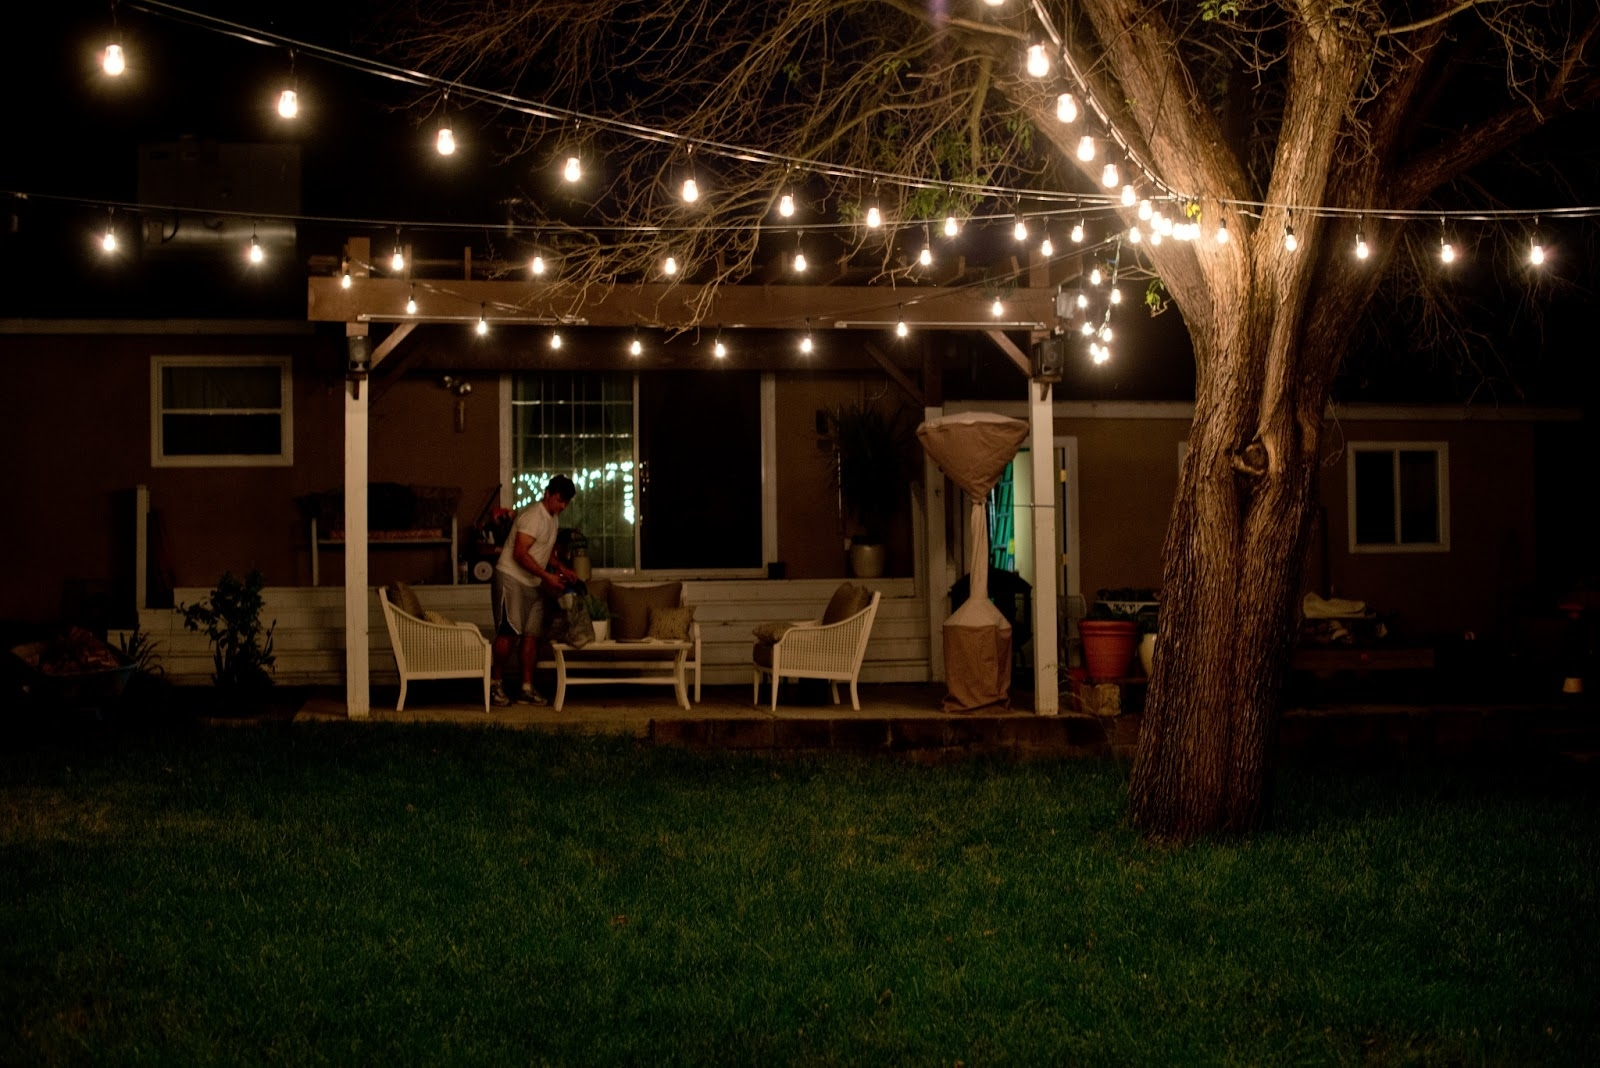 Outdoor String Lights Led Deck Diy Porch Backyard Target Patio Within Outdoor Hanging Deck Lights (View 10 of 15)